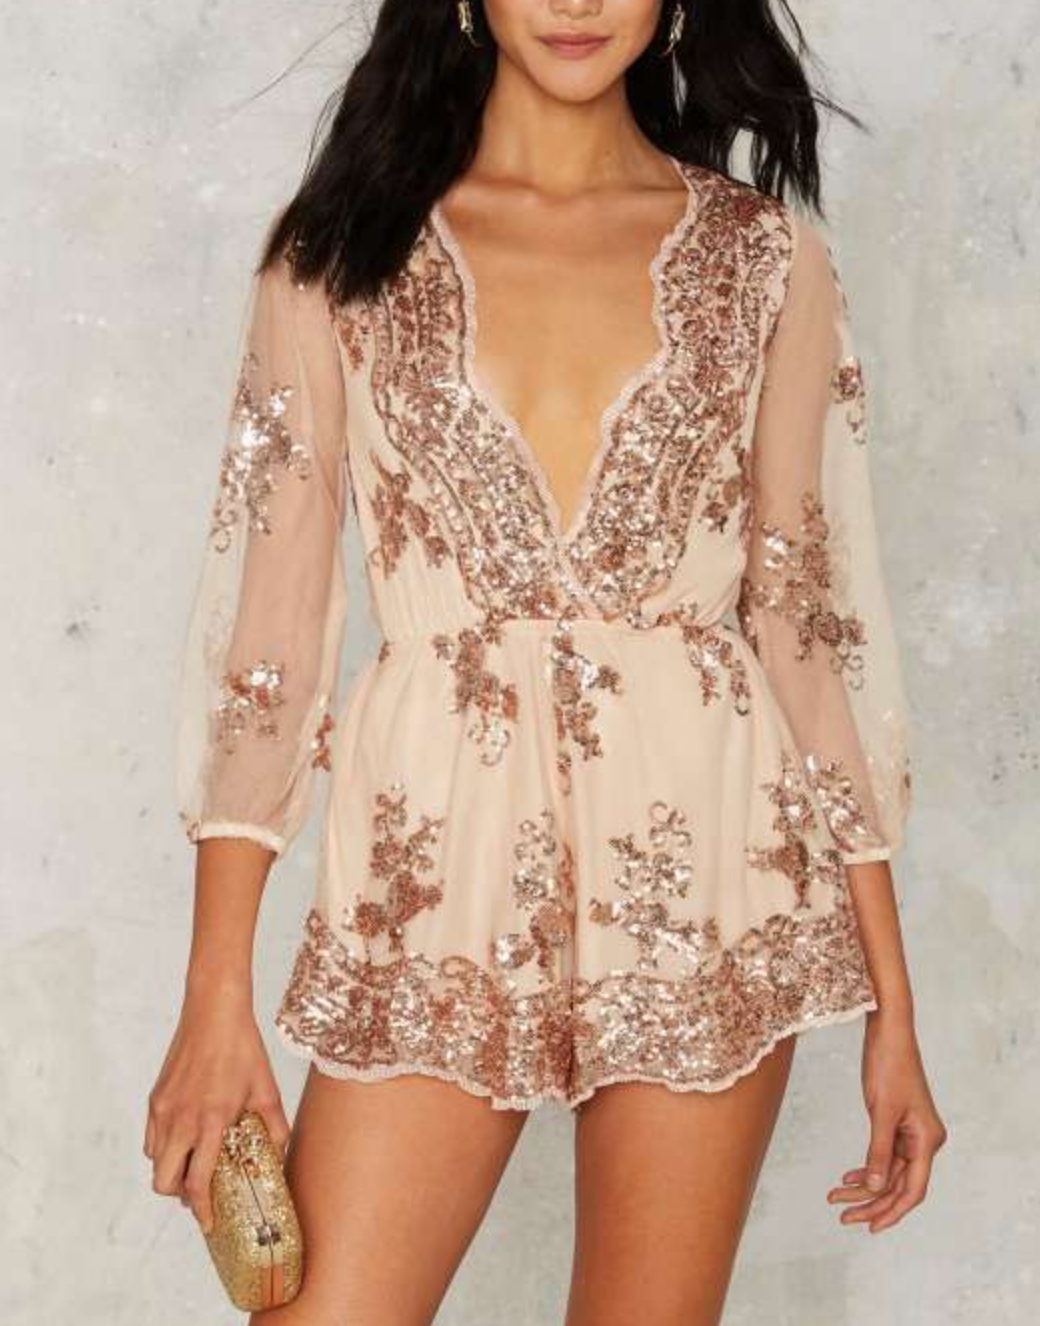 Image of Reverse - Life of the Party Sequin Romper in More Colors